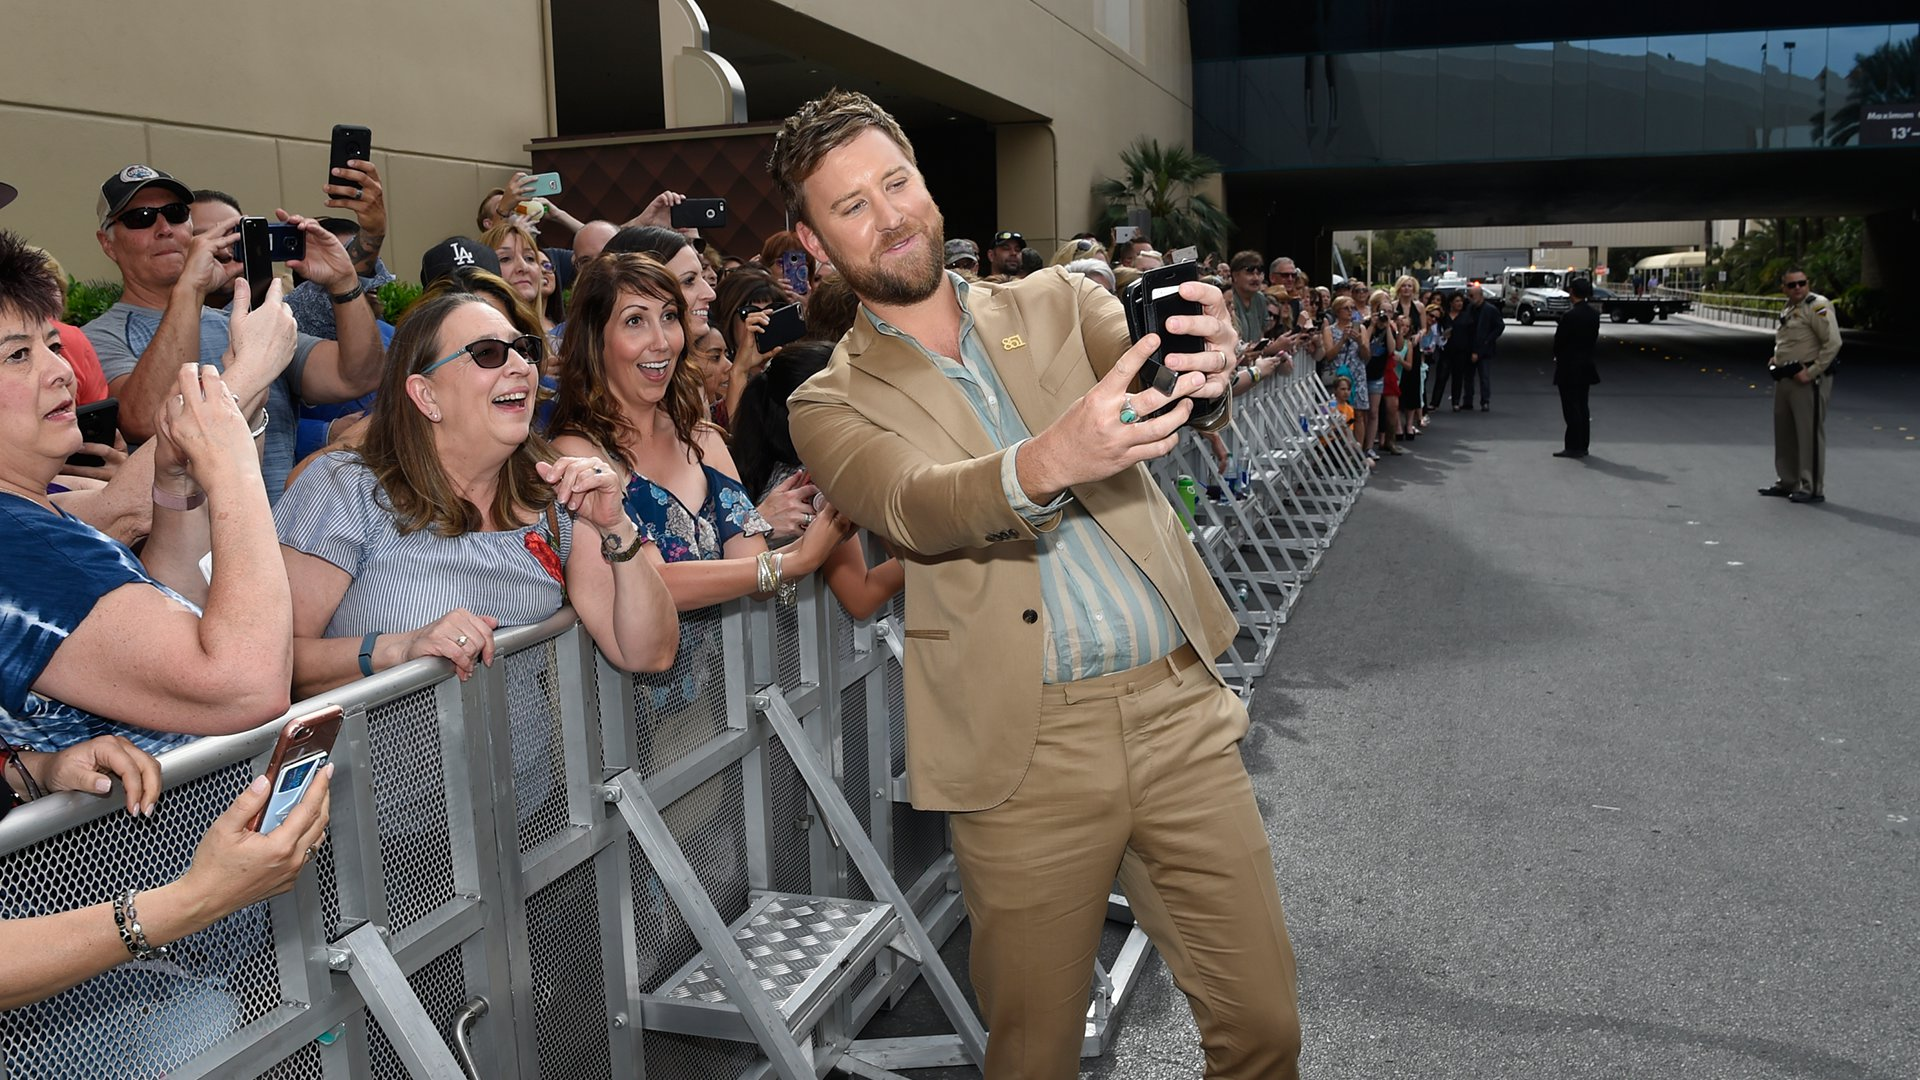 Lady Antebellum singer Charles Kelley warms up before his ACM performance by taking selfies with fans.